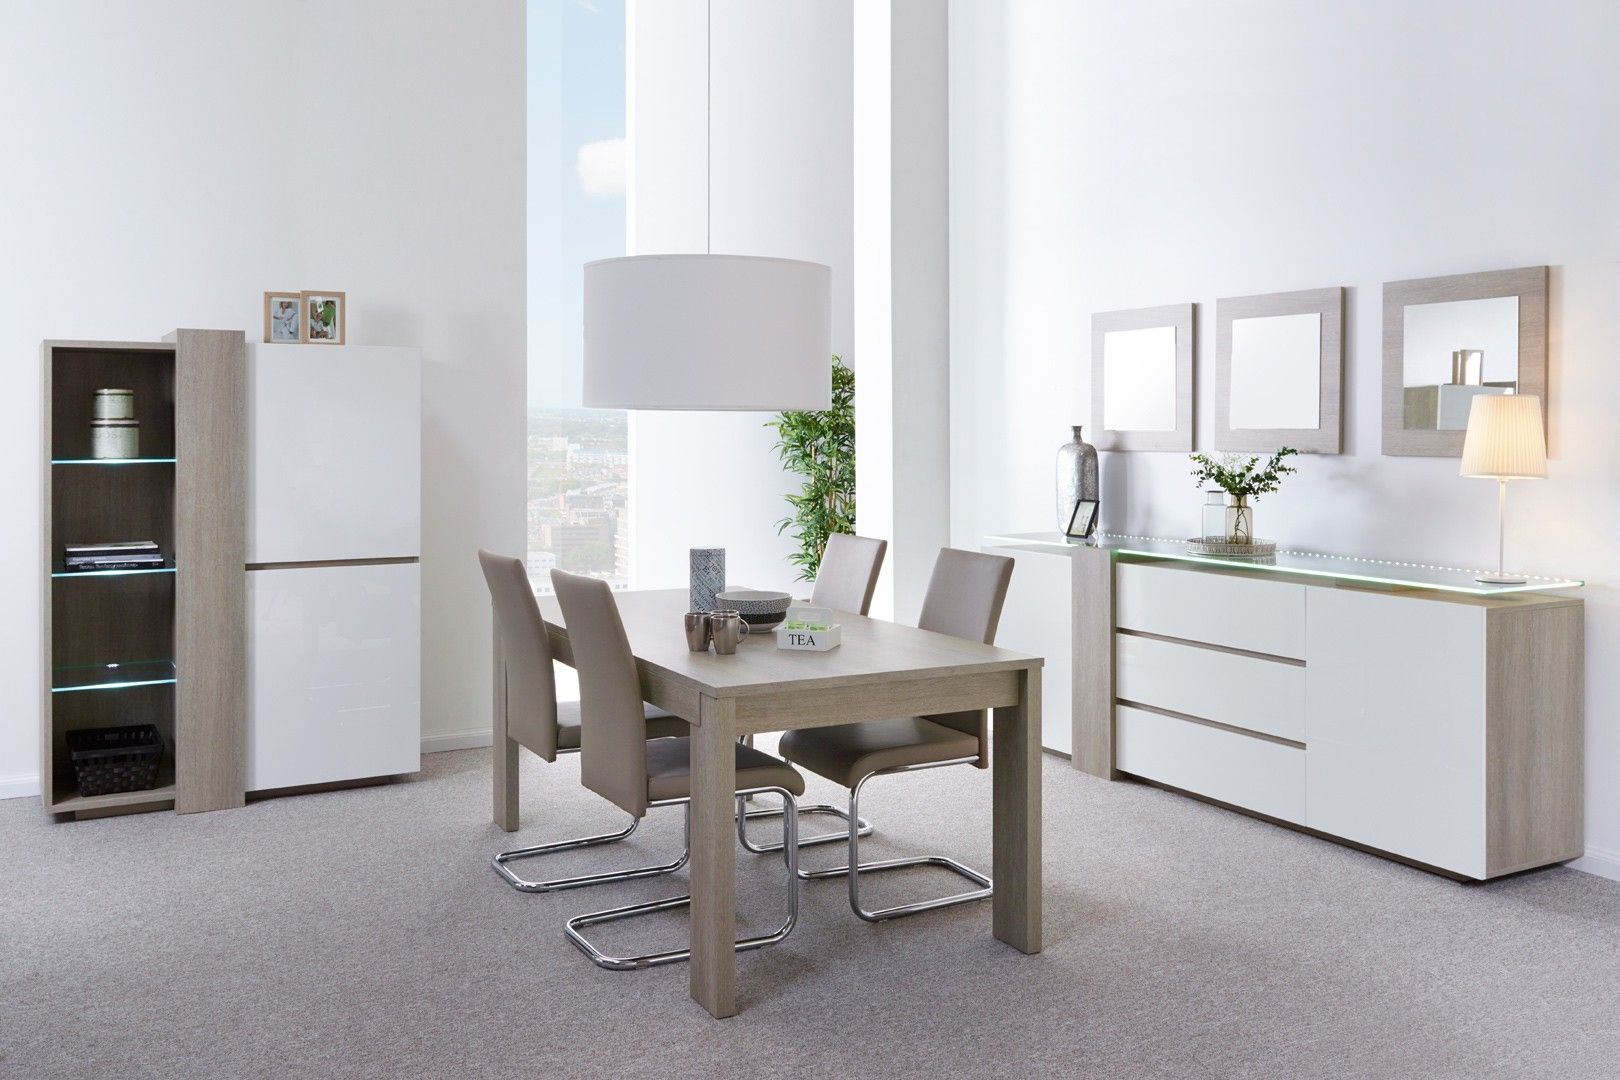 Salle A Manger Contemporaine Chene Gris Blanc Laque Angeline Salle A Manger Laquee Pas Cher Matelpro Dining Room Table Decor Furniture Living Room Style